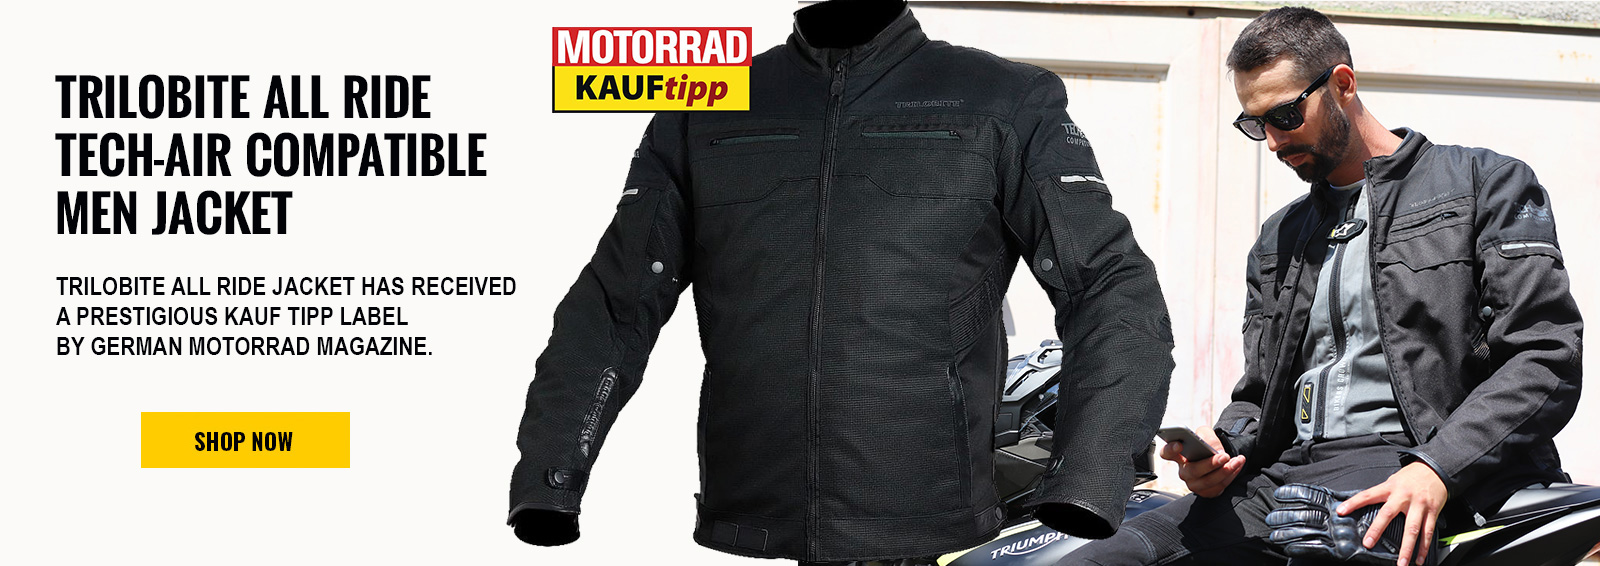 Trilobite All Ride jacket